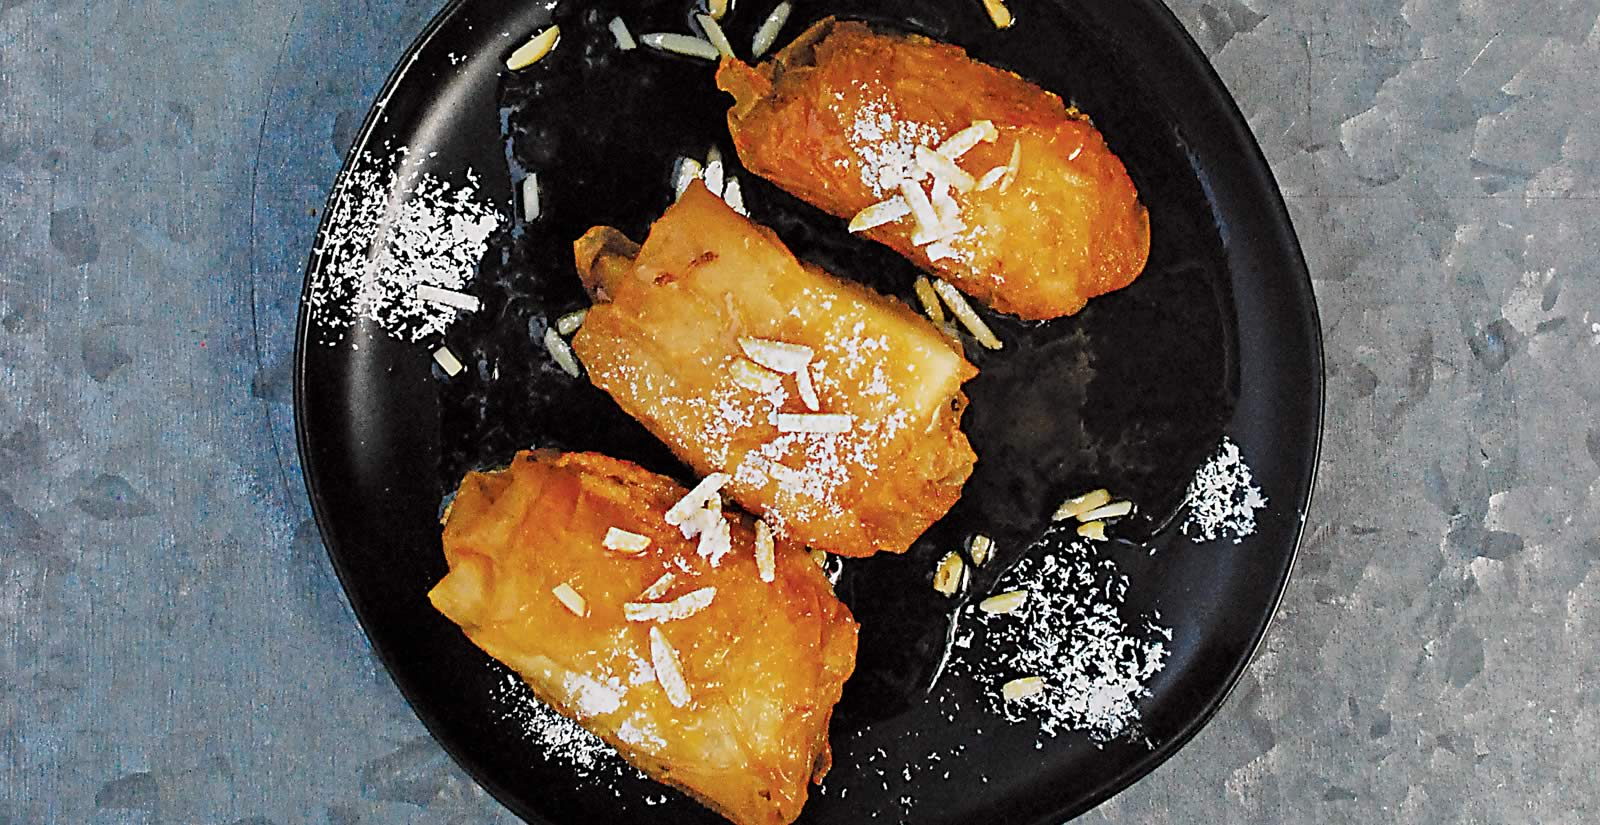 Flavors: Cheese Parcels with Honey and Orange Reduction